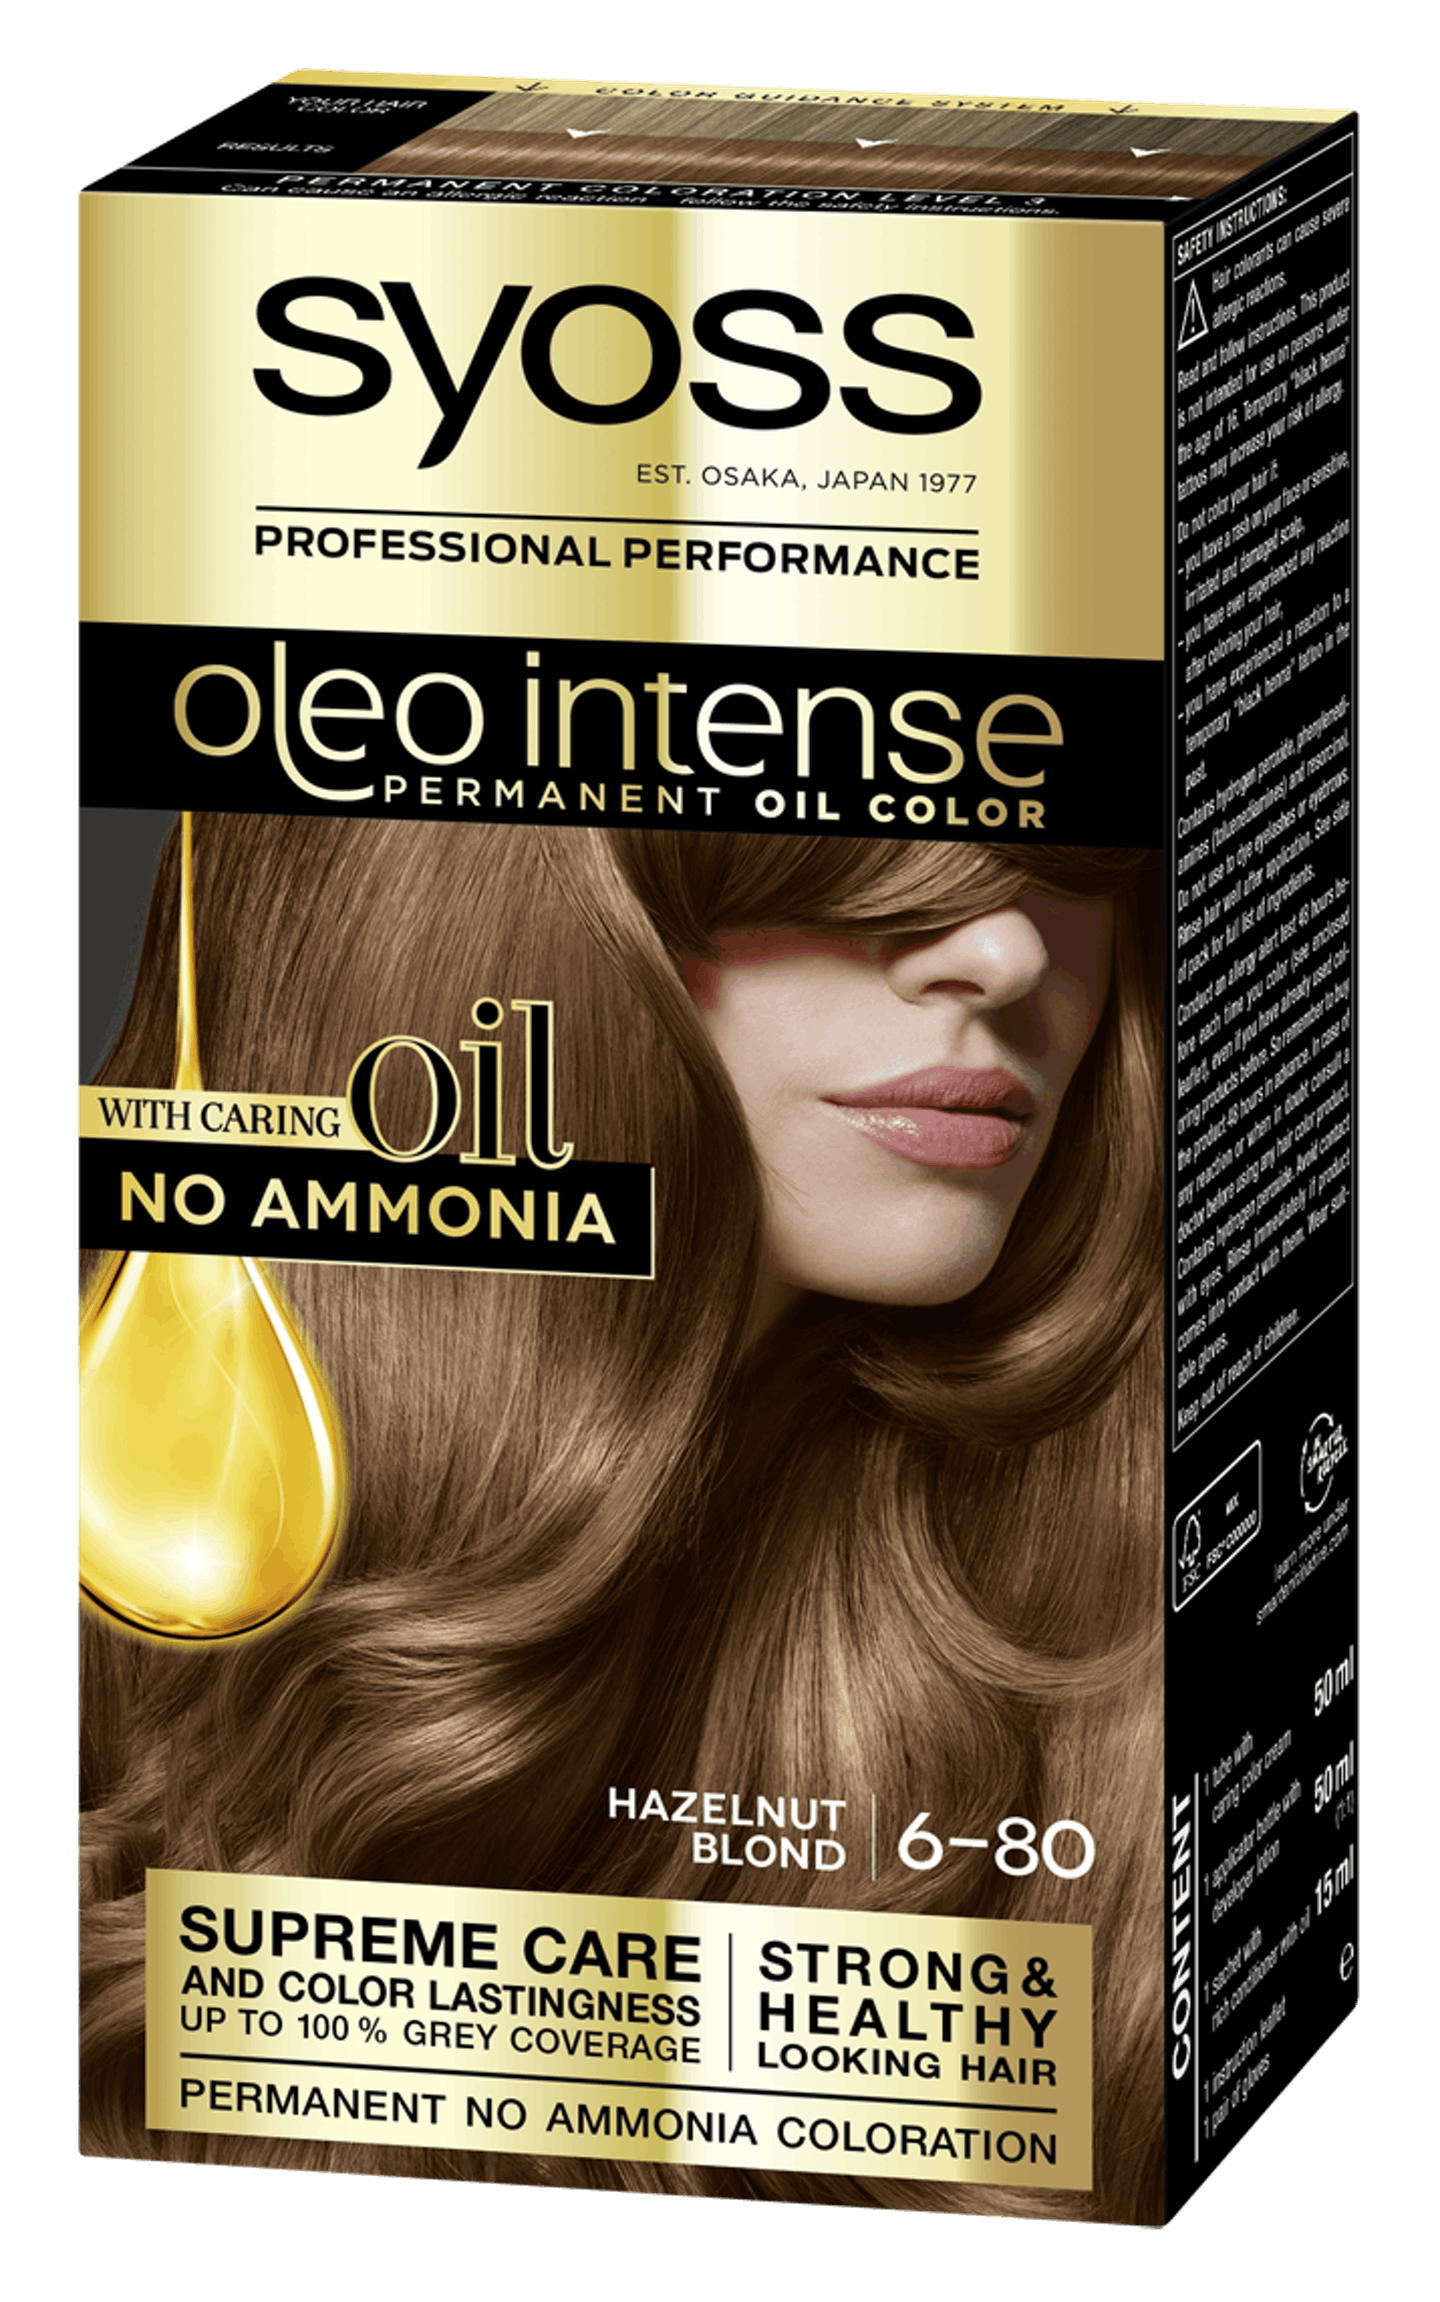 Syoss Oleo Intense Permanent Oil Color 6-80 Hazelnut Blond